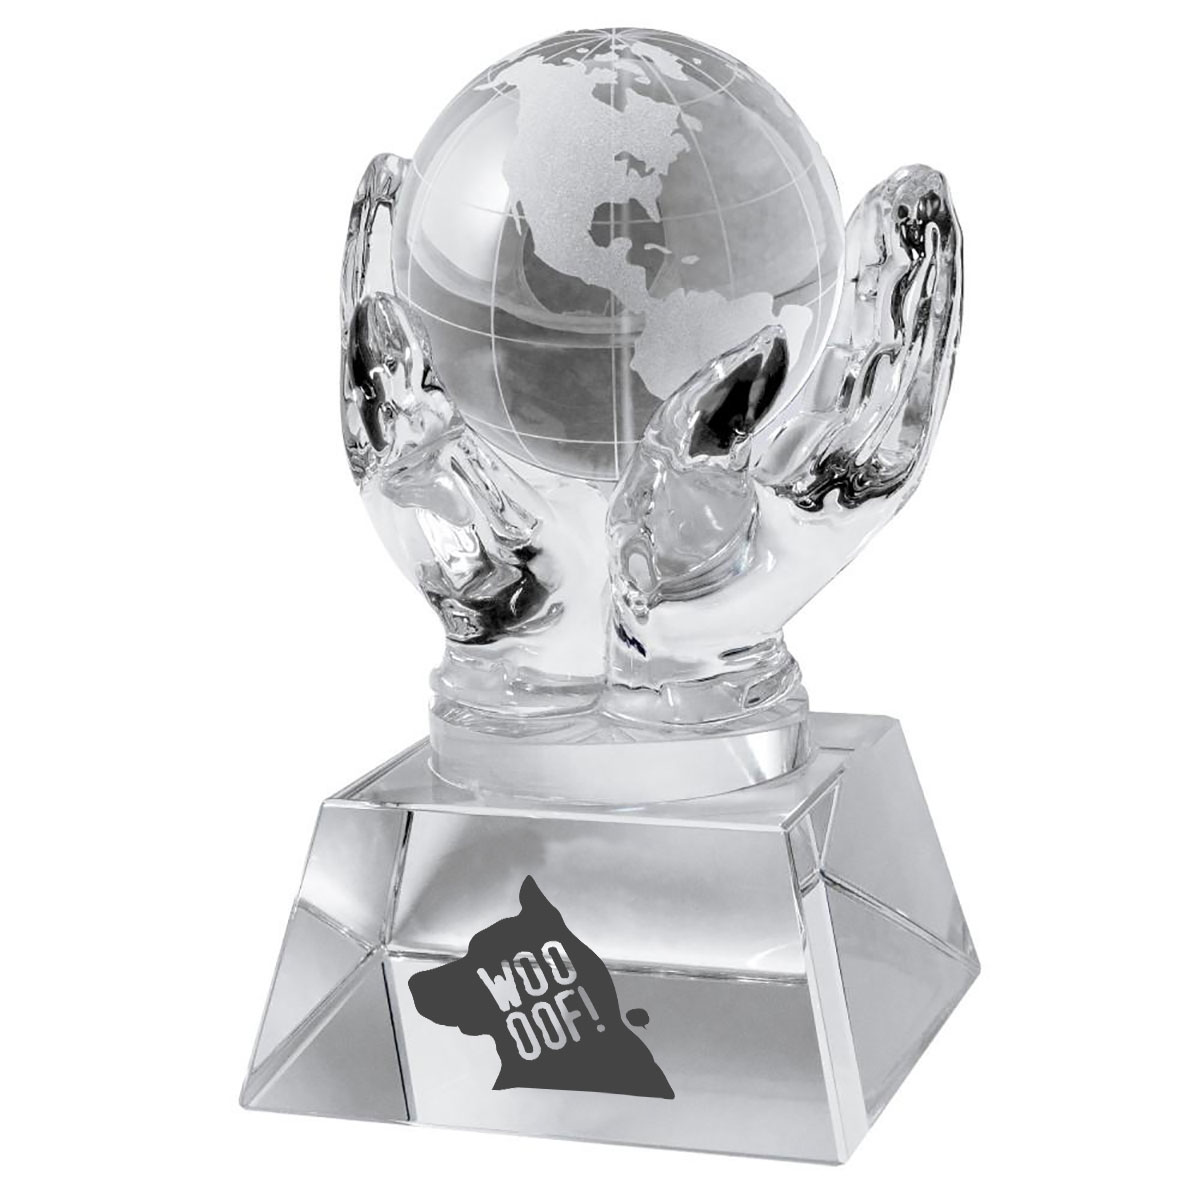 CRYSTAL HANDS HOLDING GLOBE